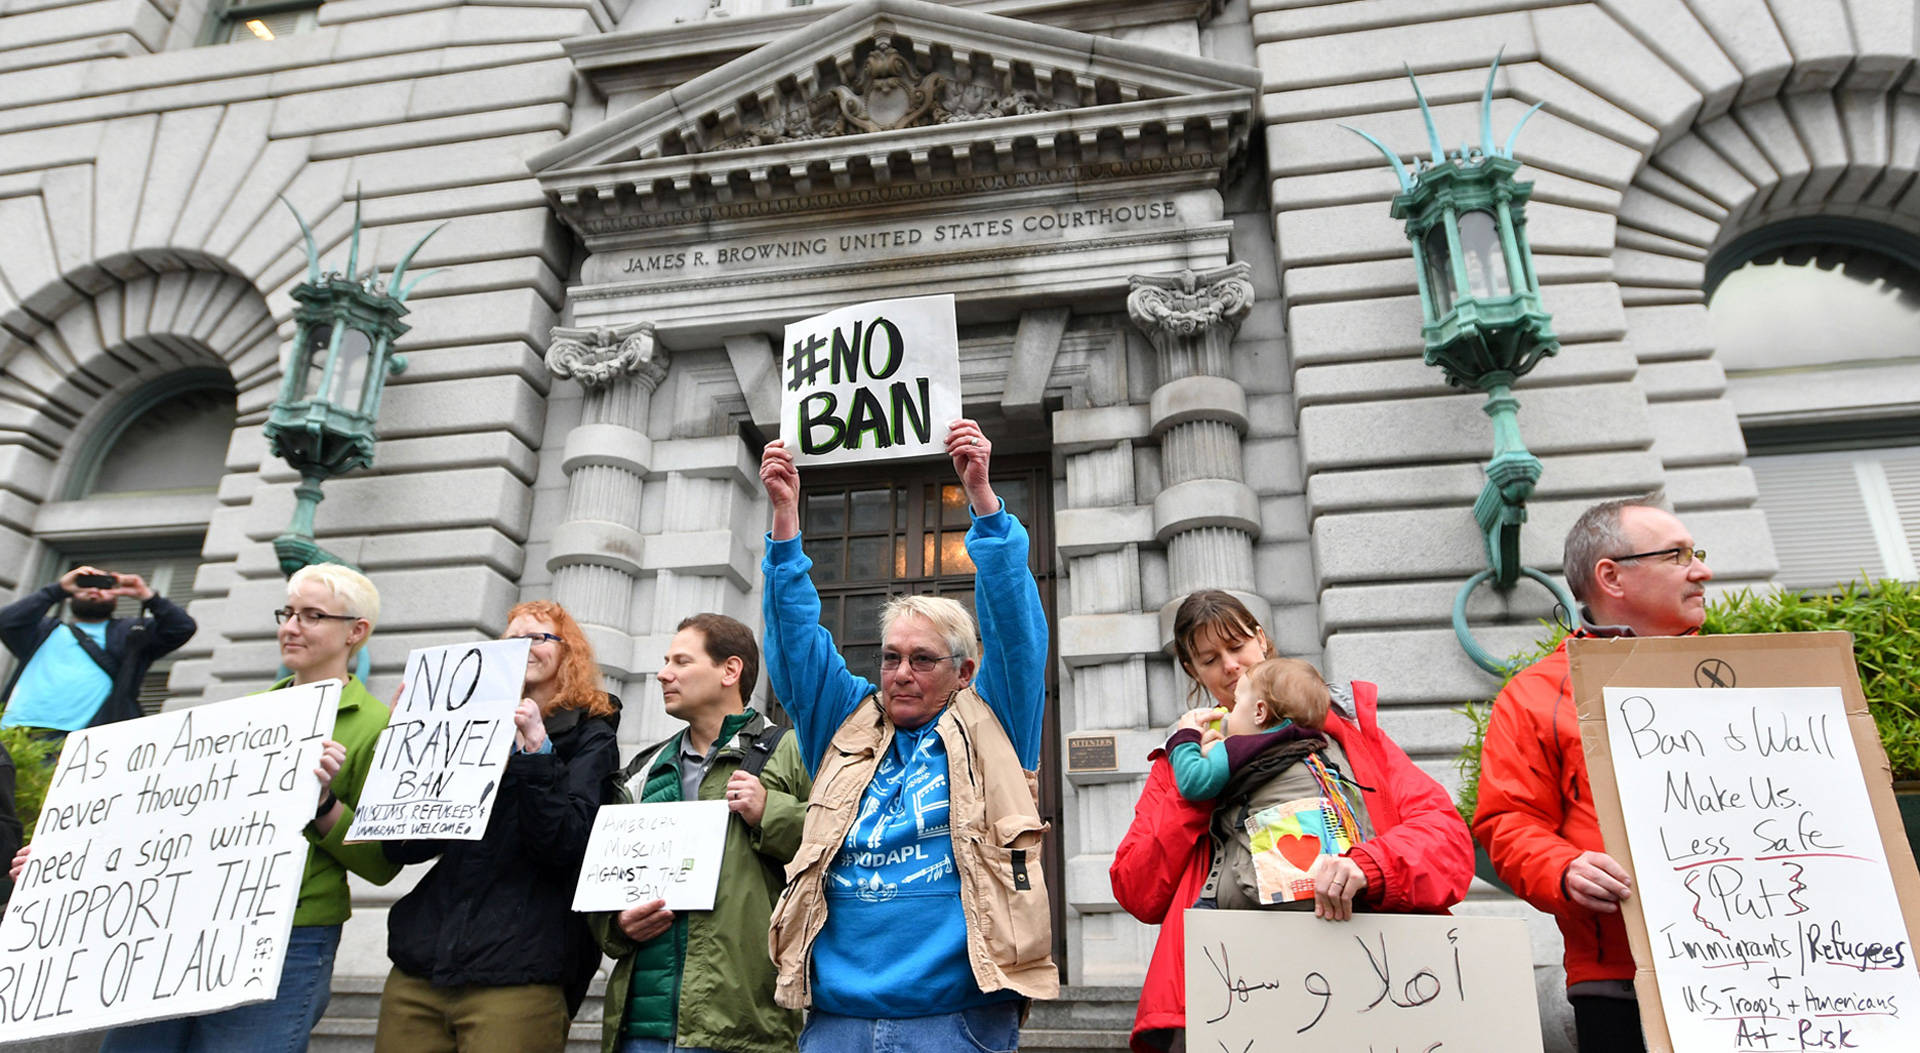 Protesters demonstrate in front of the U.S. 9th Circuit Court of Appeals in San Francisco on Feb. 7, 2017. Josh Edelson/AFP/Getty Images